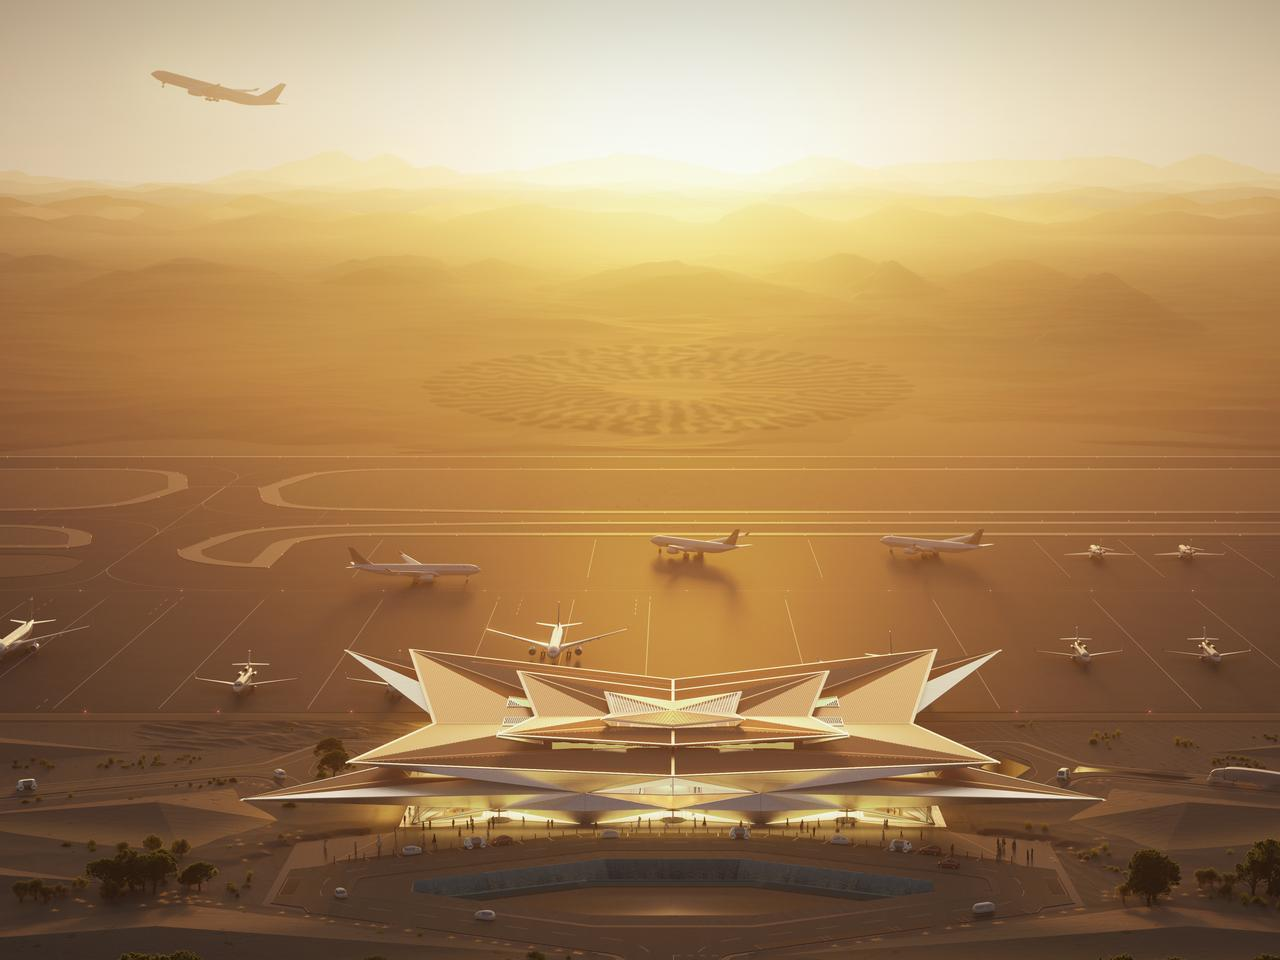 AMAALA international airport, Saudi Arabia.